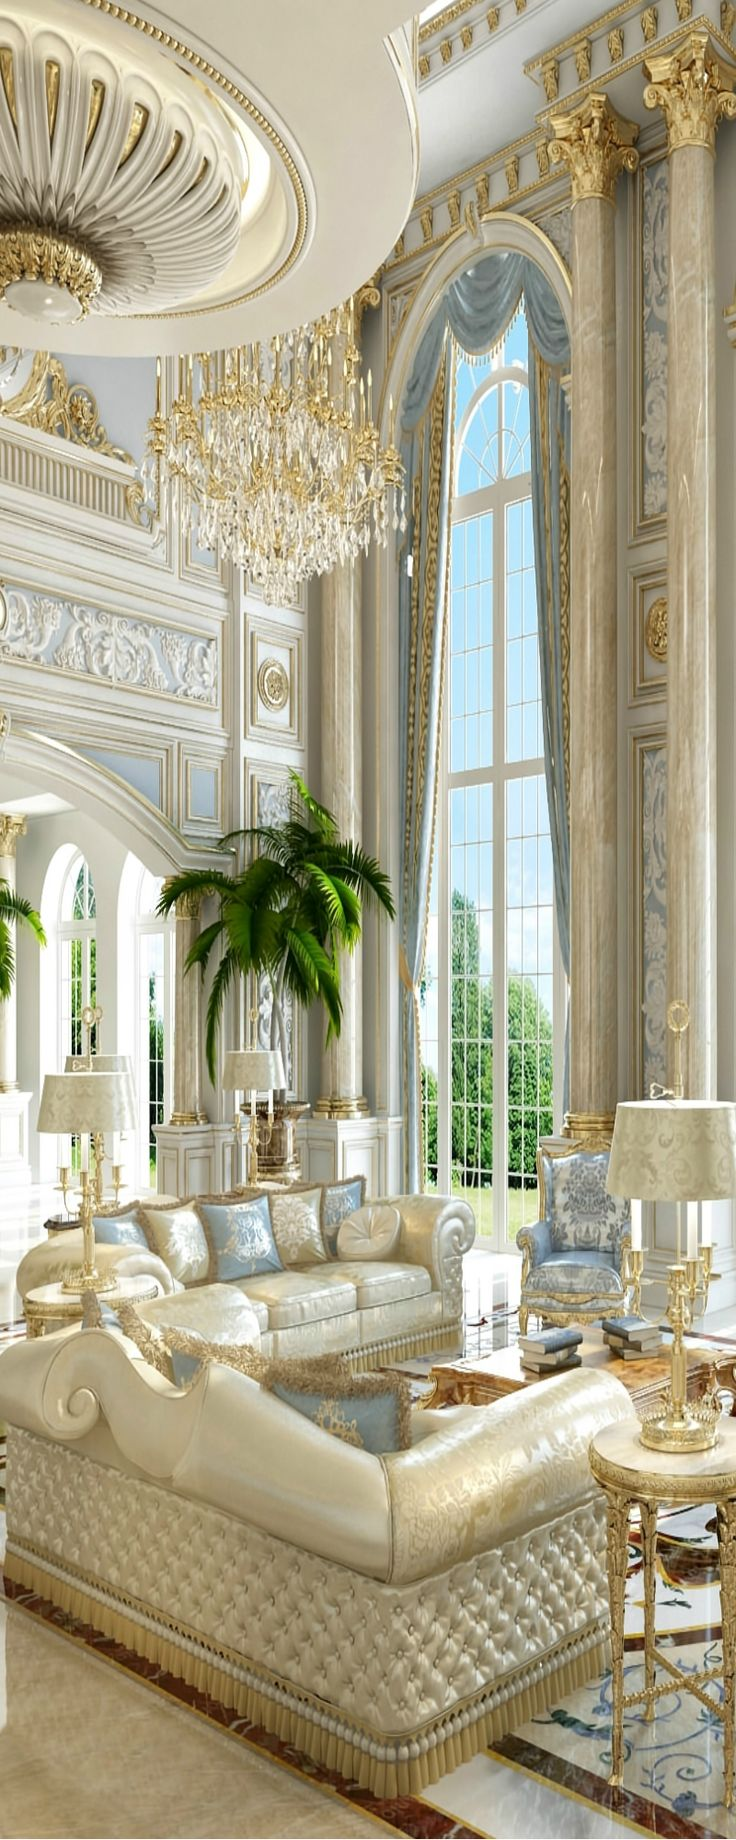 Interior home decorations luxury interior decorating ideas - Rosamaria G Frangini Architecture Luxury Interiors Lux Interiors Antonovich Luxury Design